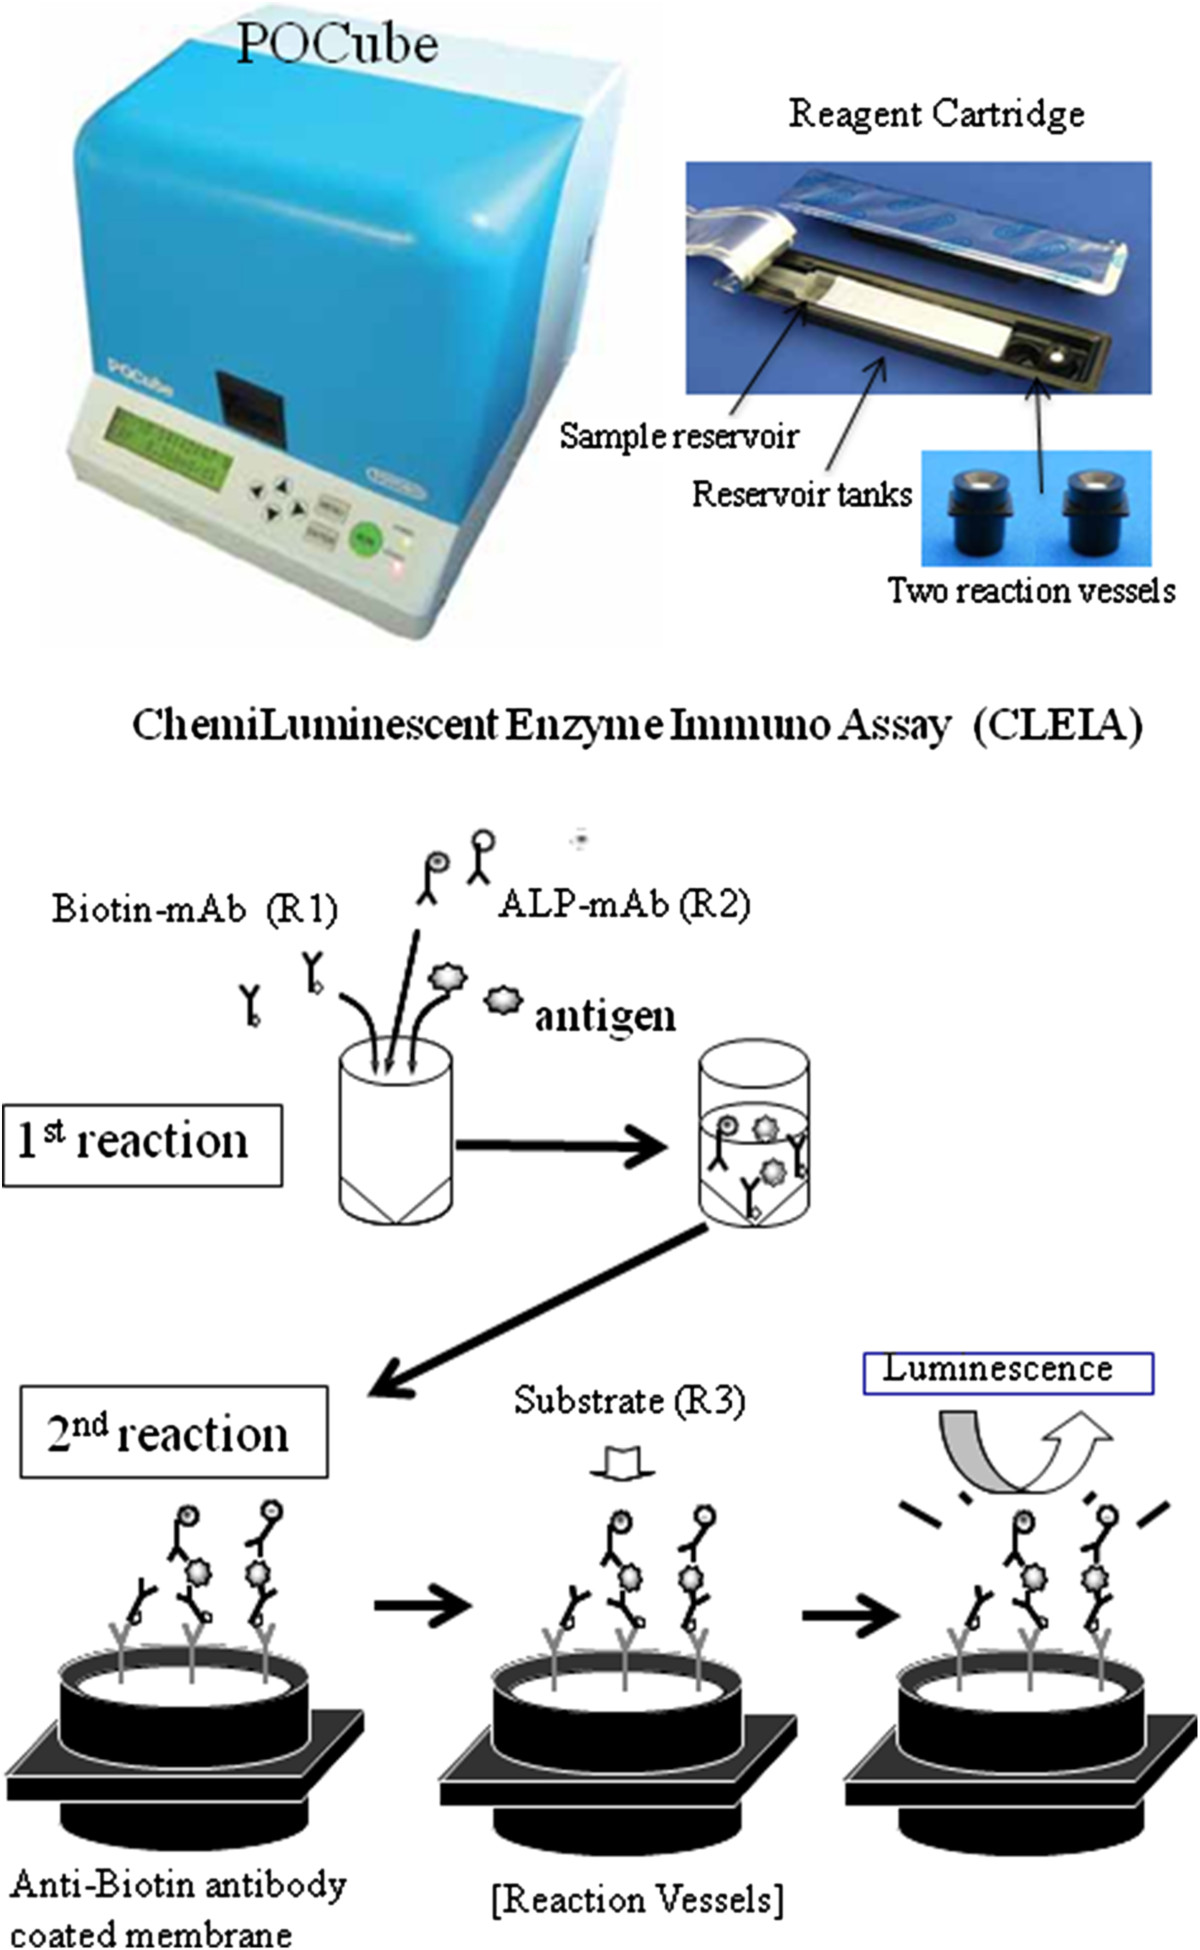 https://static-content.springer.com/image/art%3A10.1186%2F1471-2334-14-362/MediaObjects/12879_2014_Article_3688_Fig1_HTML.jpg